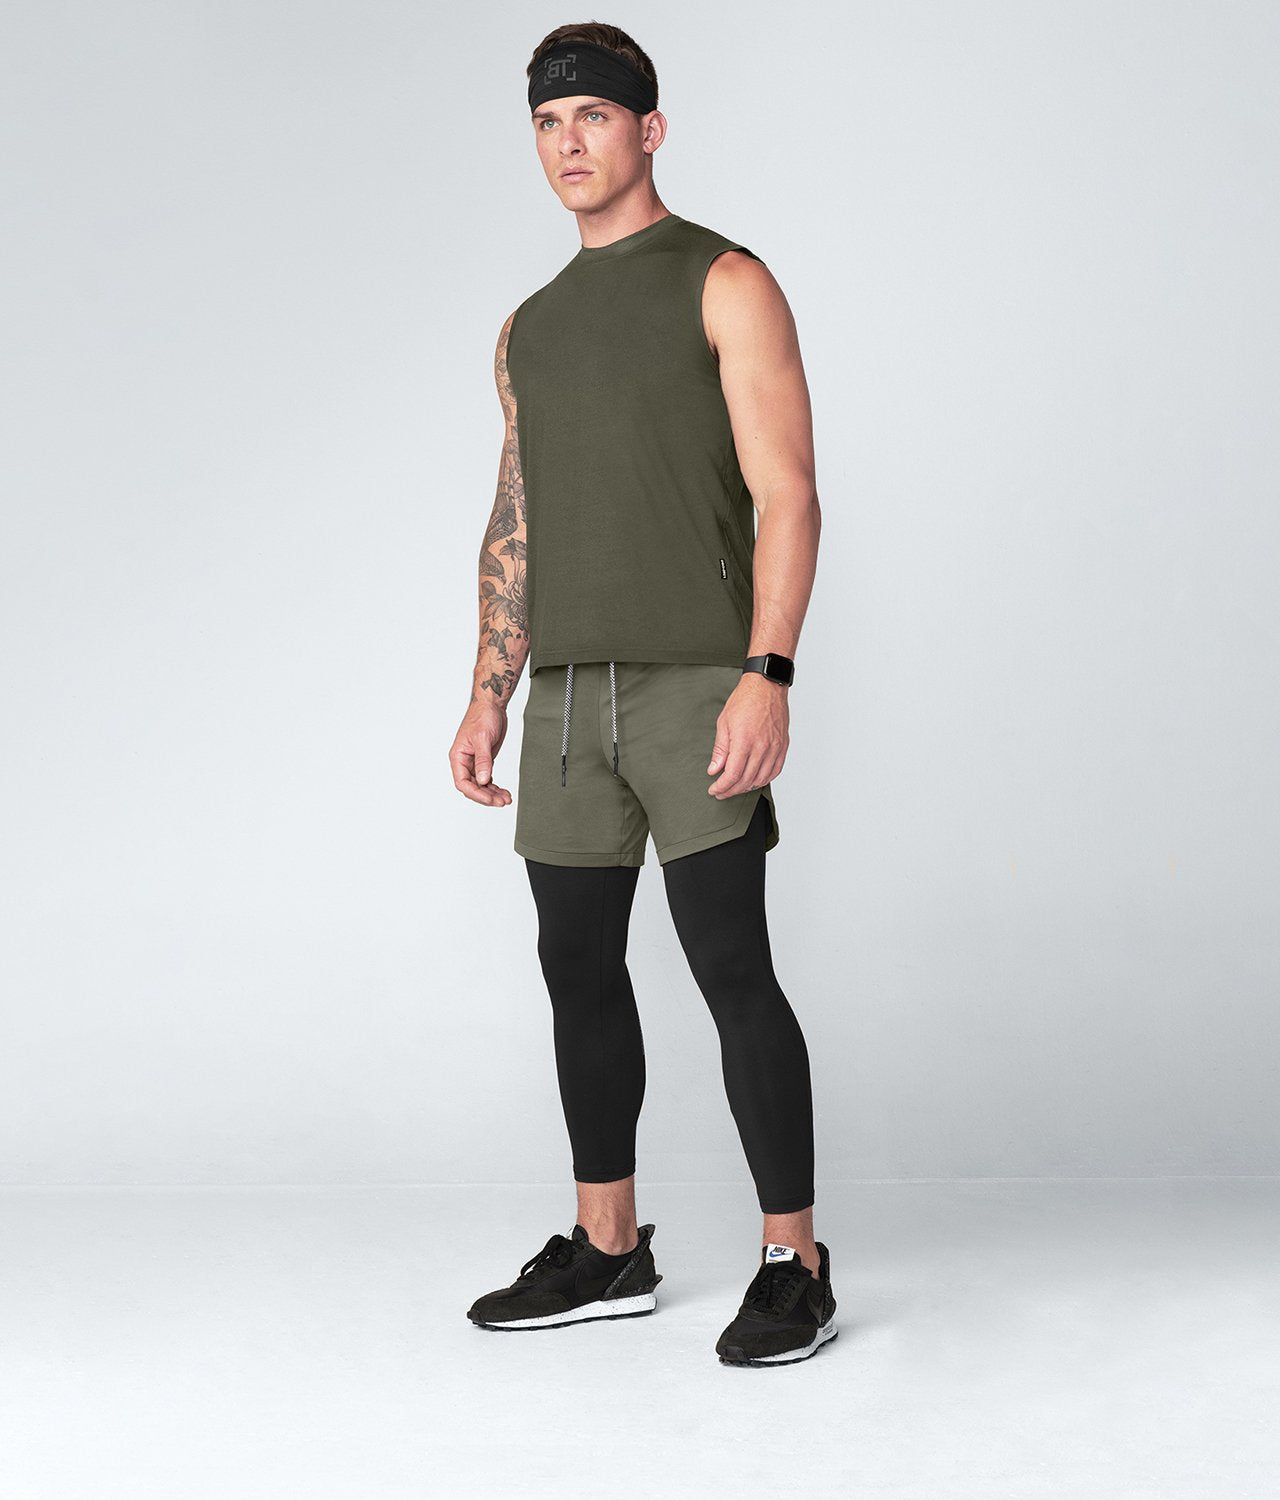 Born Tough United Kingdom Army Green Ultrasoft Sleeveless Gym Workout Shirt For Men